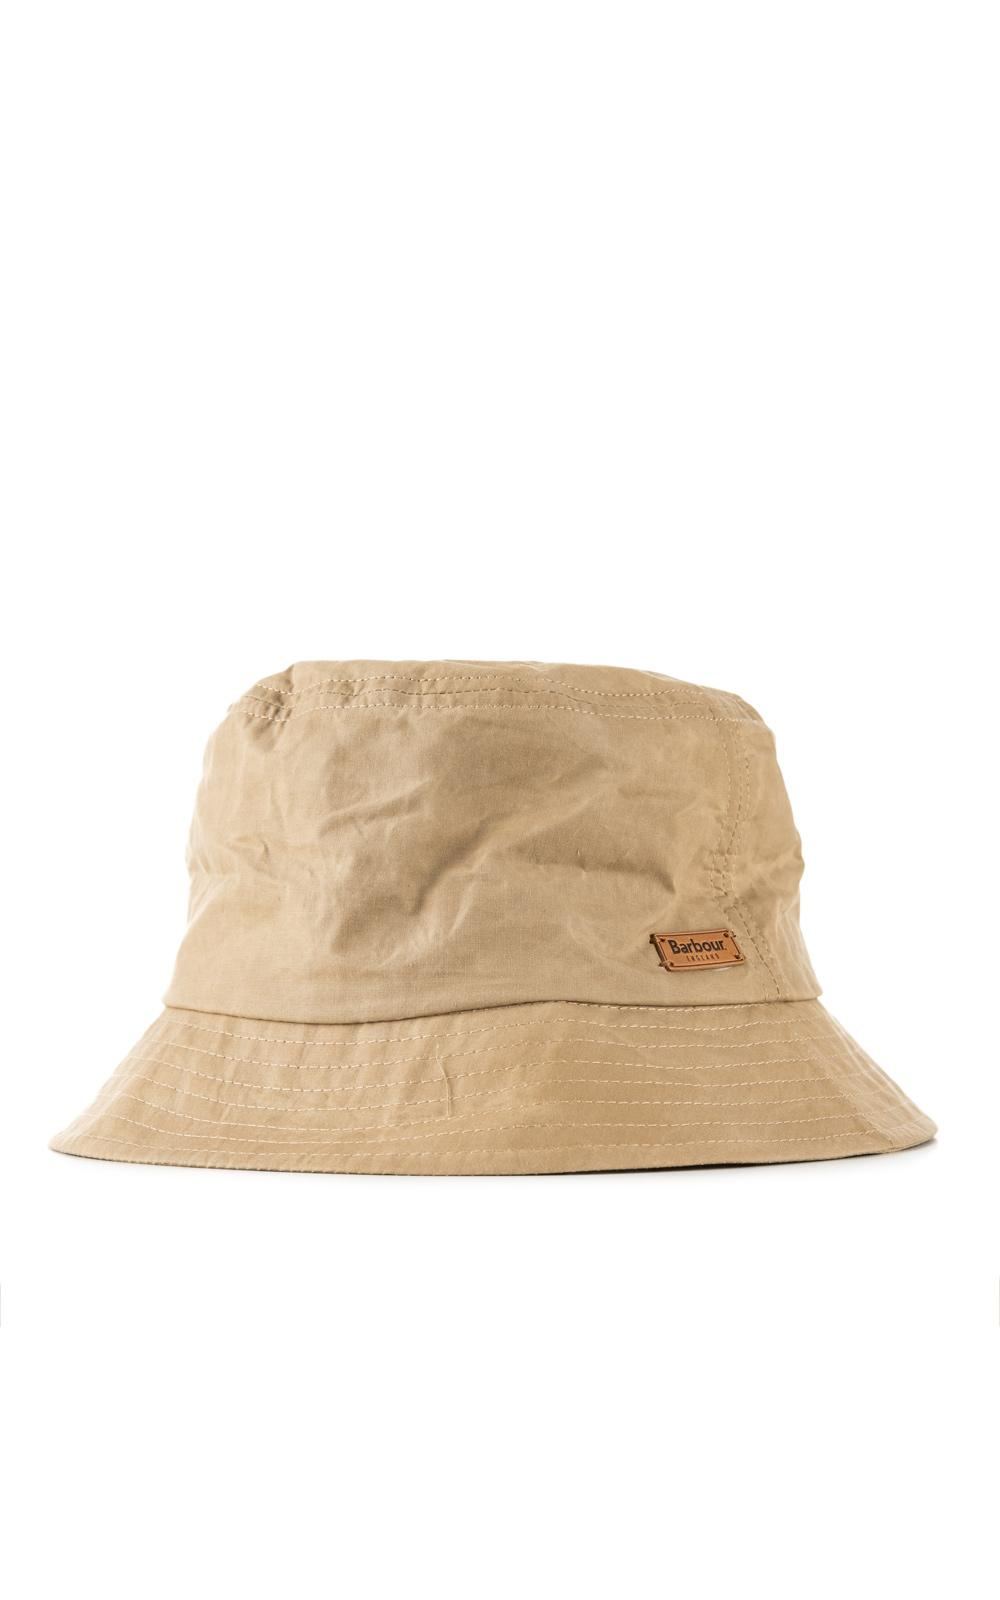 d9ca9eaa061 Lyst - Barbour Irvine Wax Sports Hat Mid Khaki in Natural for Men